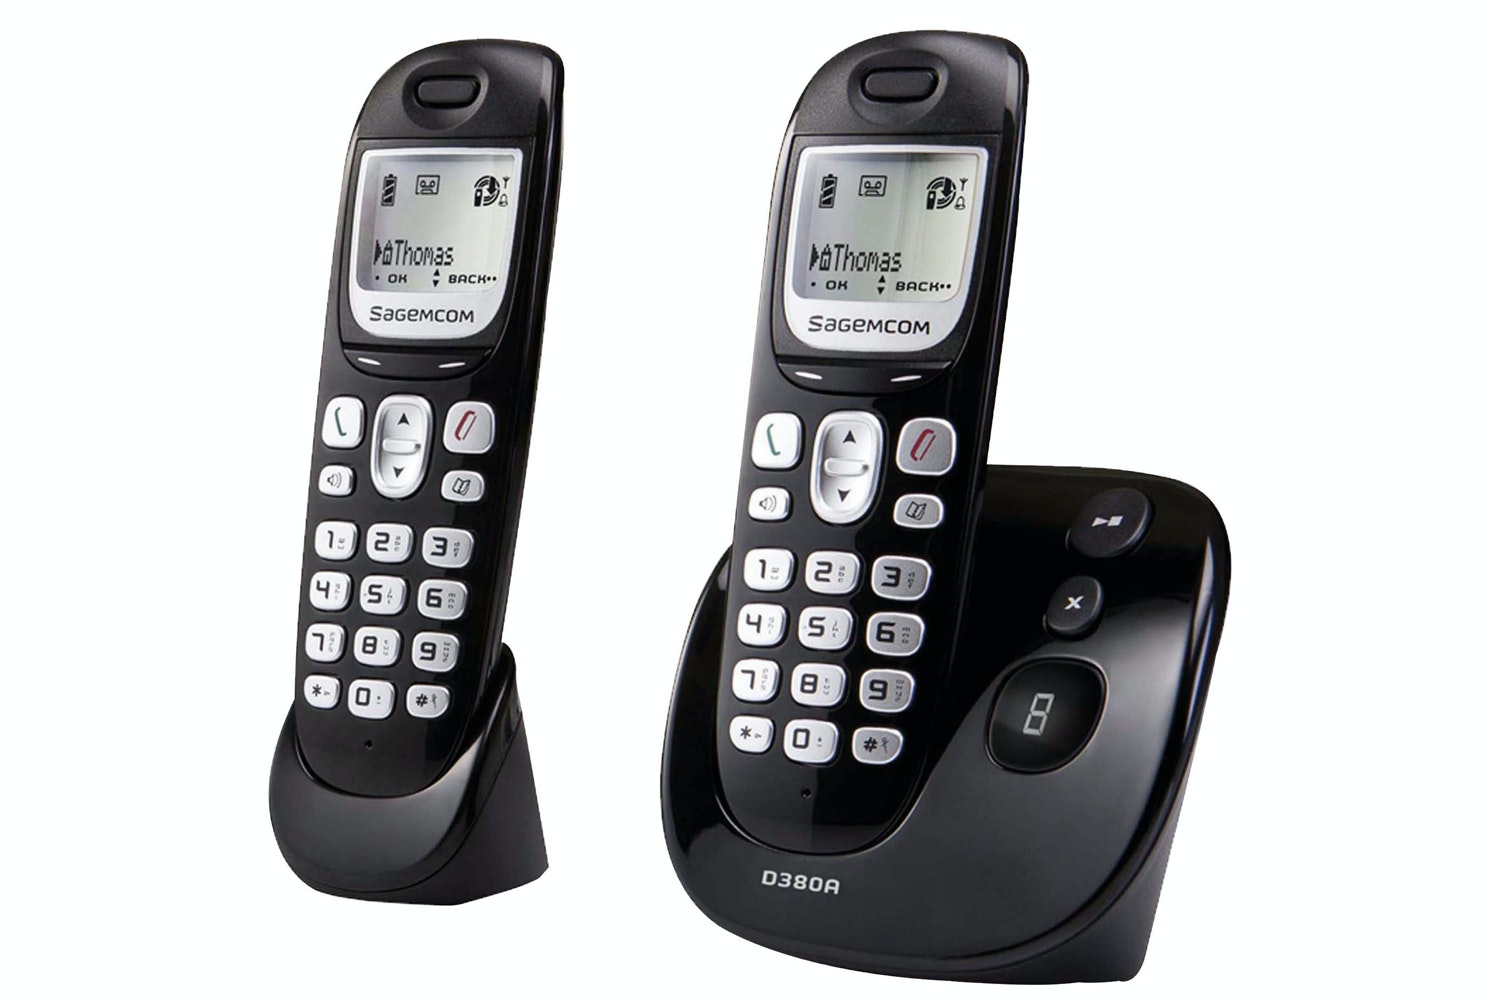 Eircom Home Phone with Answering Machine | Twin